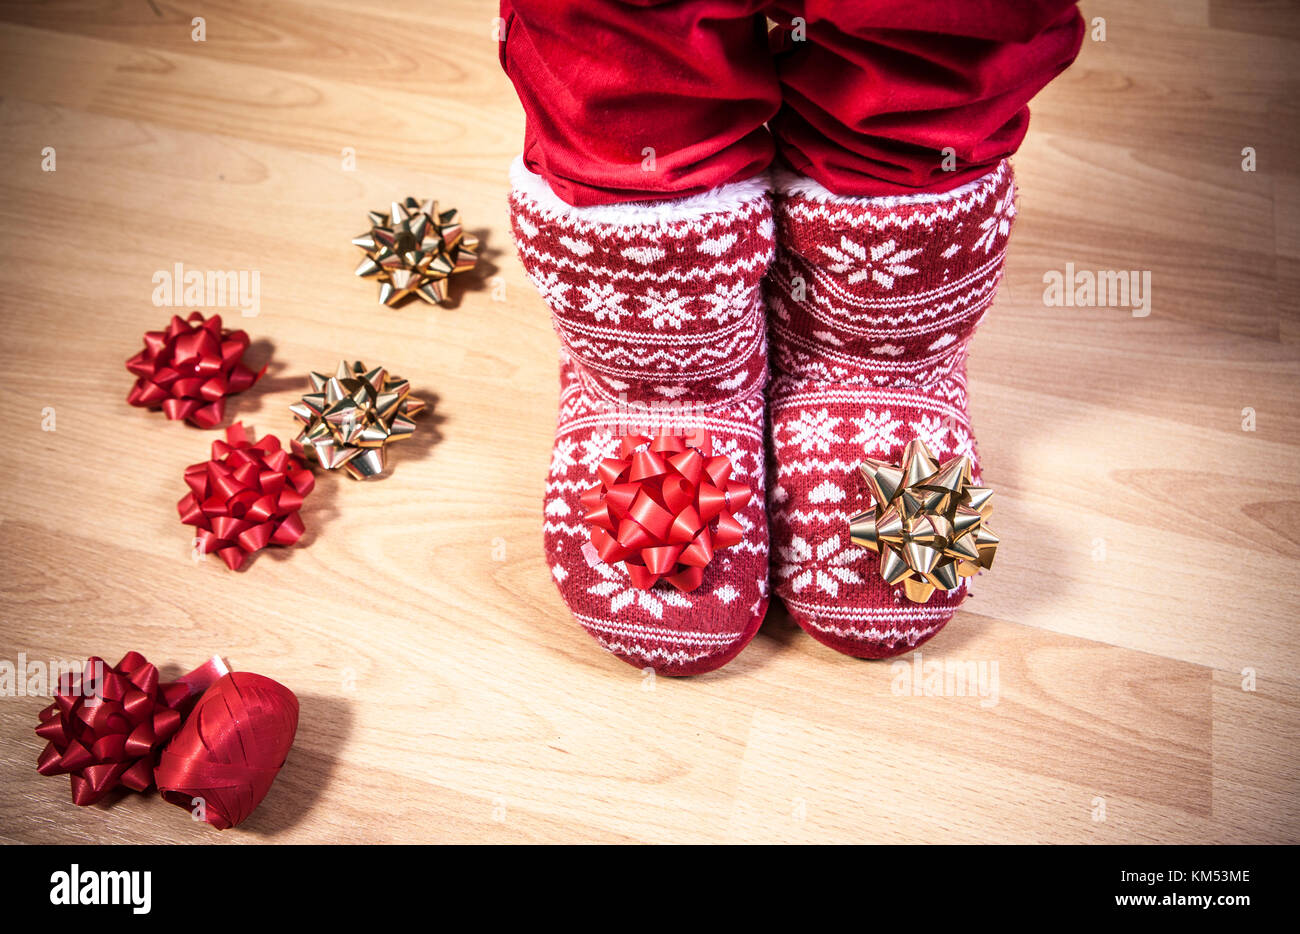 Red knitted boots with fur full of ribbons over wooden floor. Christmas staff concept - Stock Image